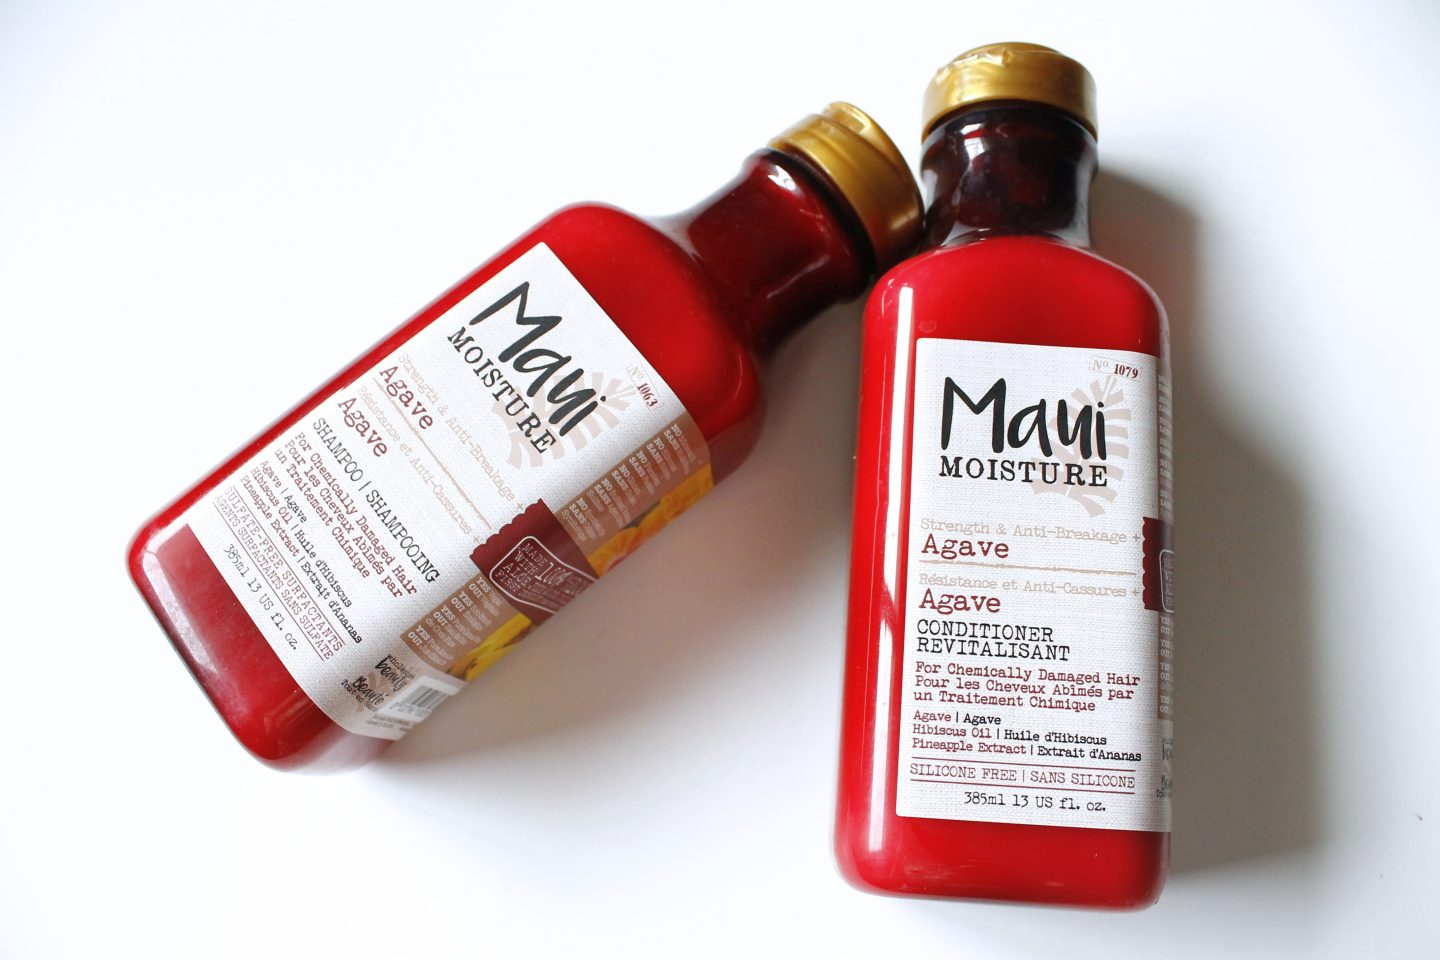 Maui Moisture : The New Drugstore Shampoo You Must Try